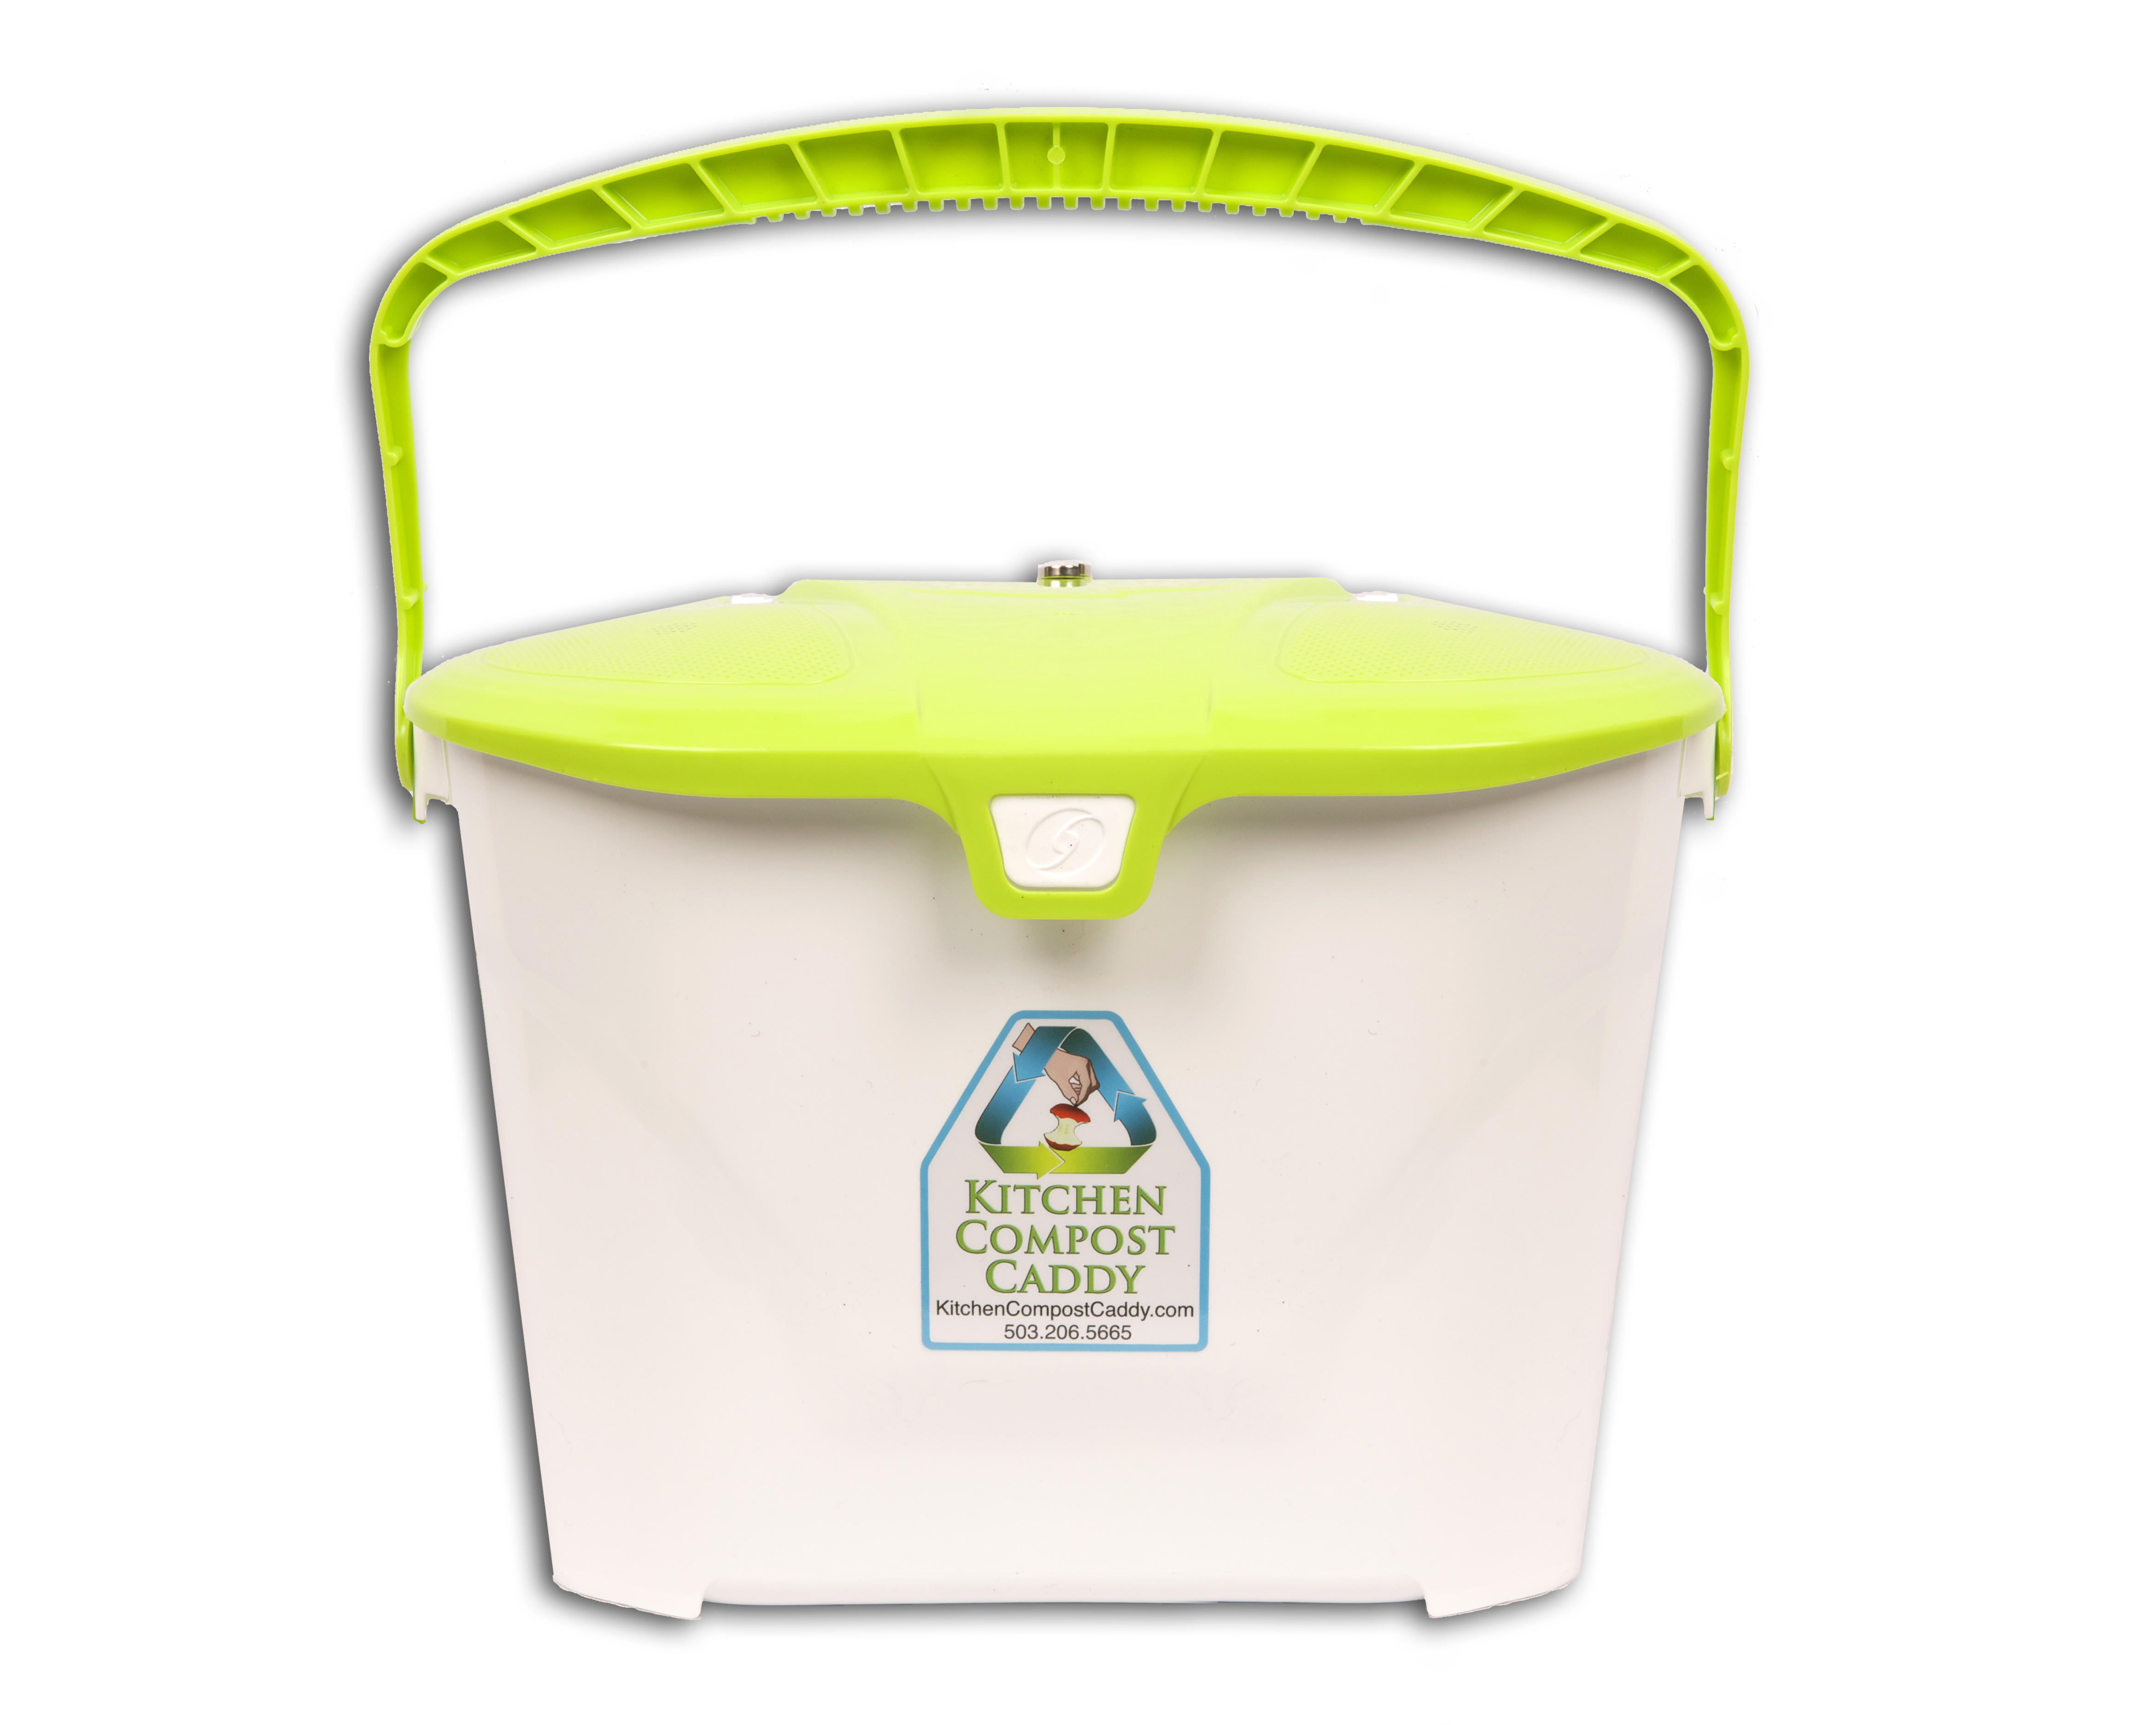 Kitchen Compost Caddy Vented Compost Pail With Activated Carbon Filters And  Magnetic Vented Lid (for Use With Kitchen Compost Caddy Cabinet Mounted  Rack)